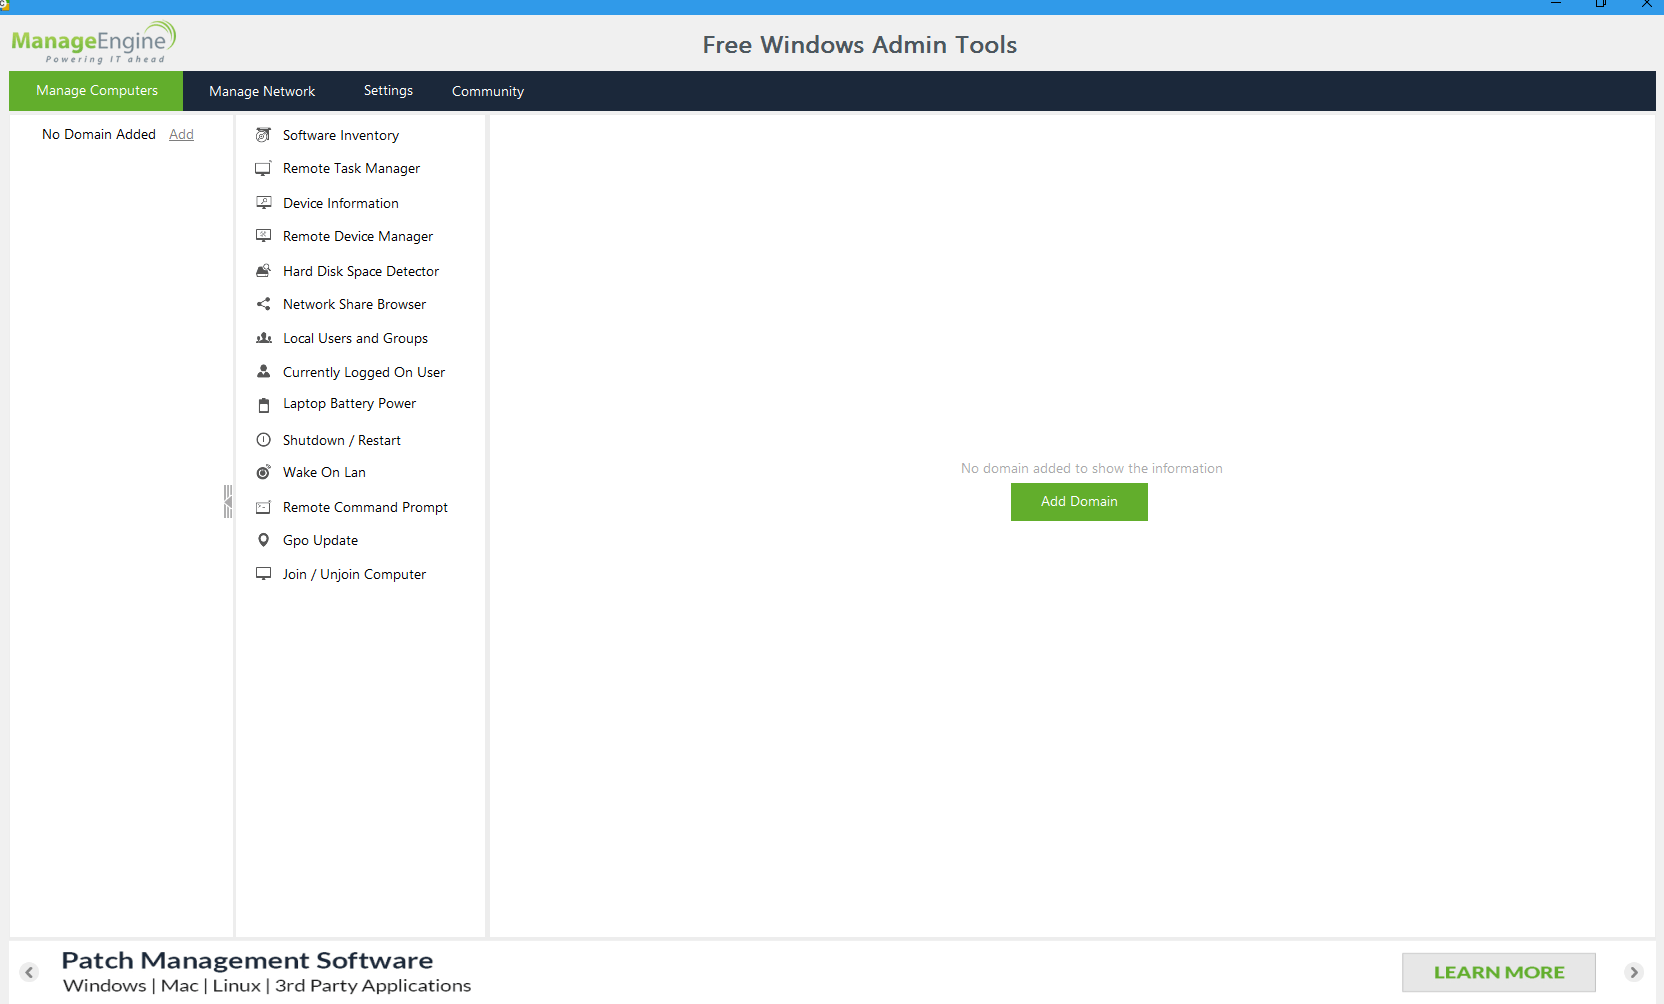 Free-Windows-Admin-Tool